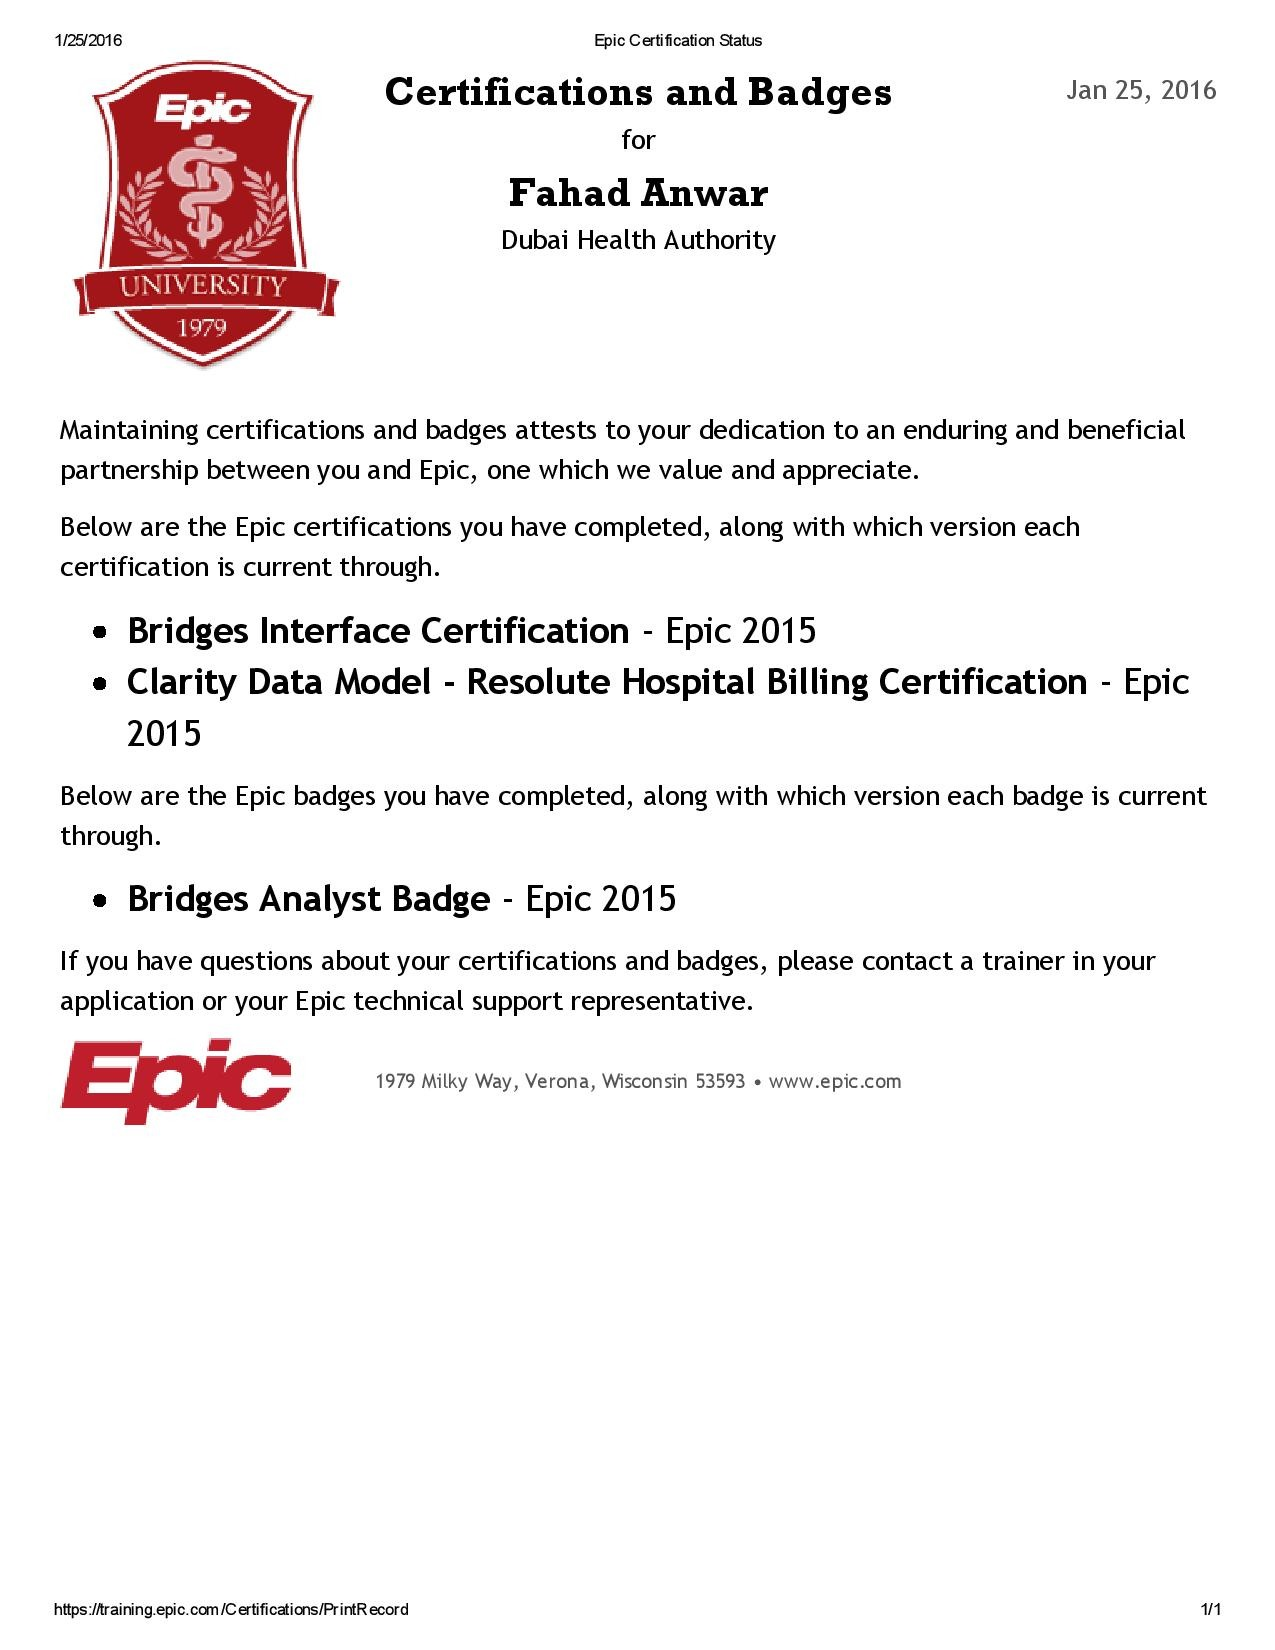 Luxury pictures of epic certification training business cards fahad anwar bayt 1betcityfo Images